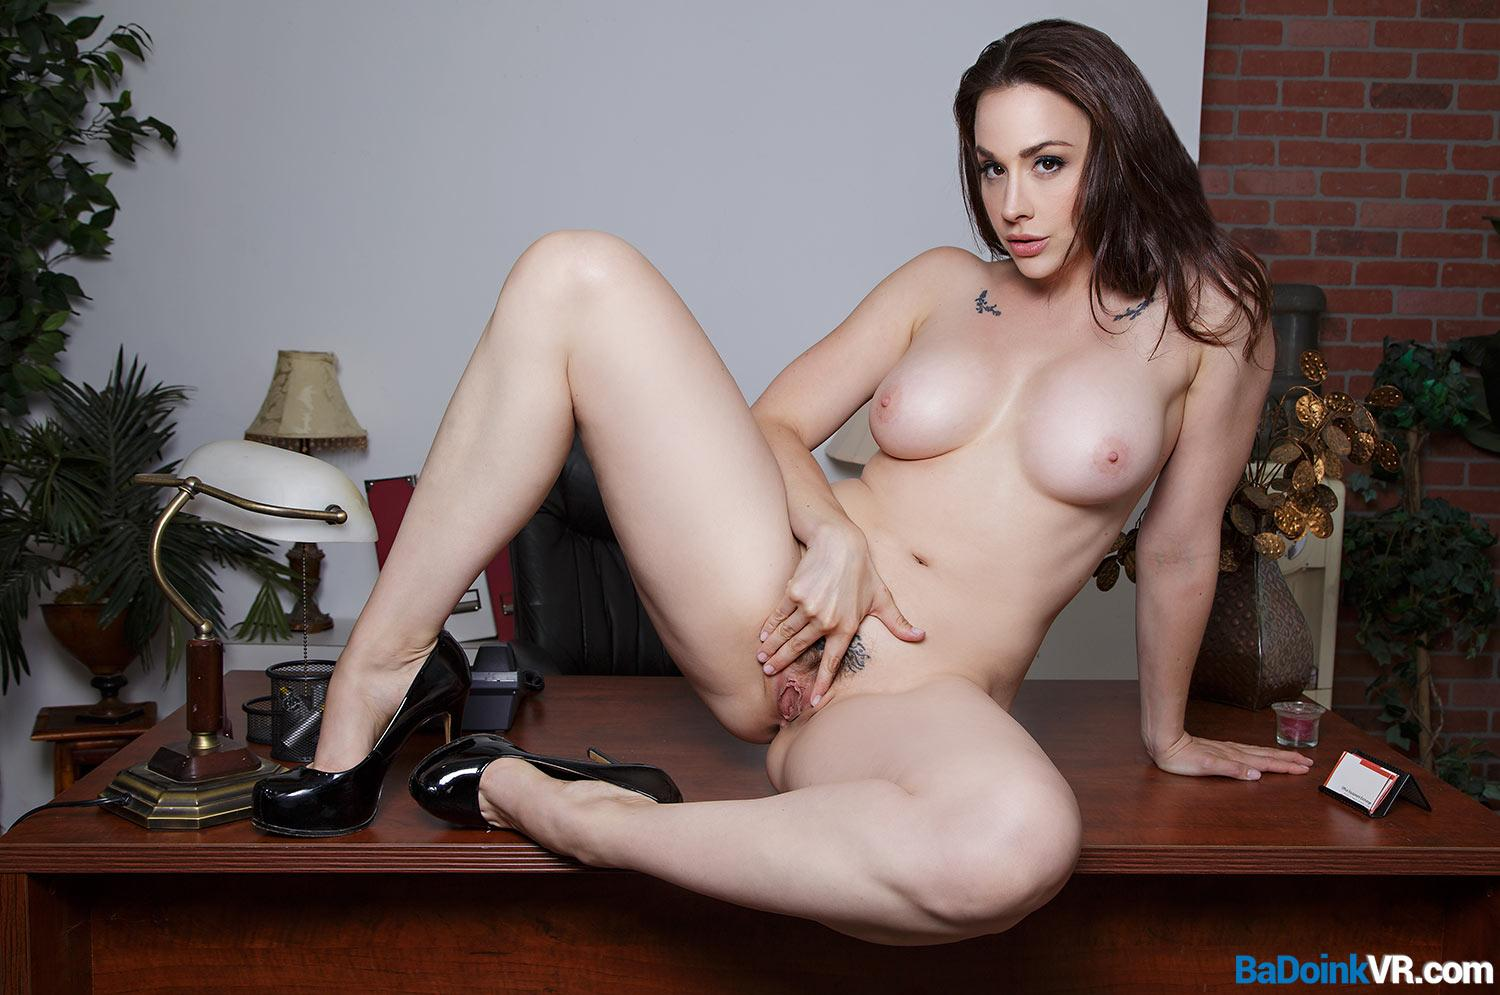 Chanel opens her legs wilde open for a great 180 VR Video Shooting picture 2